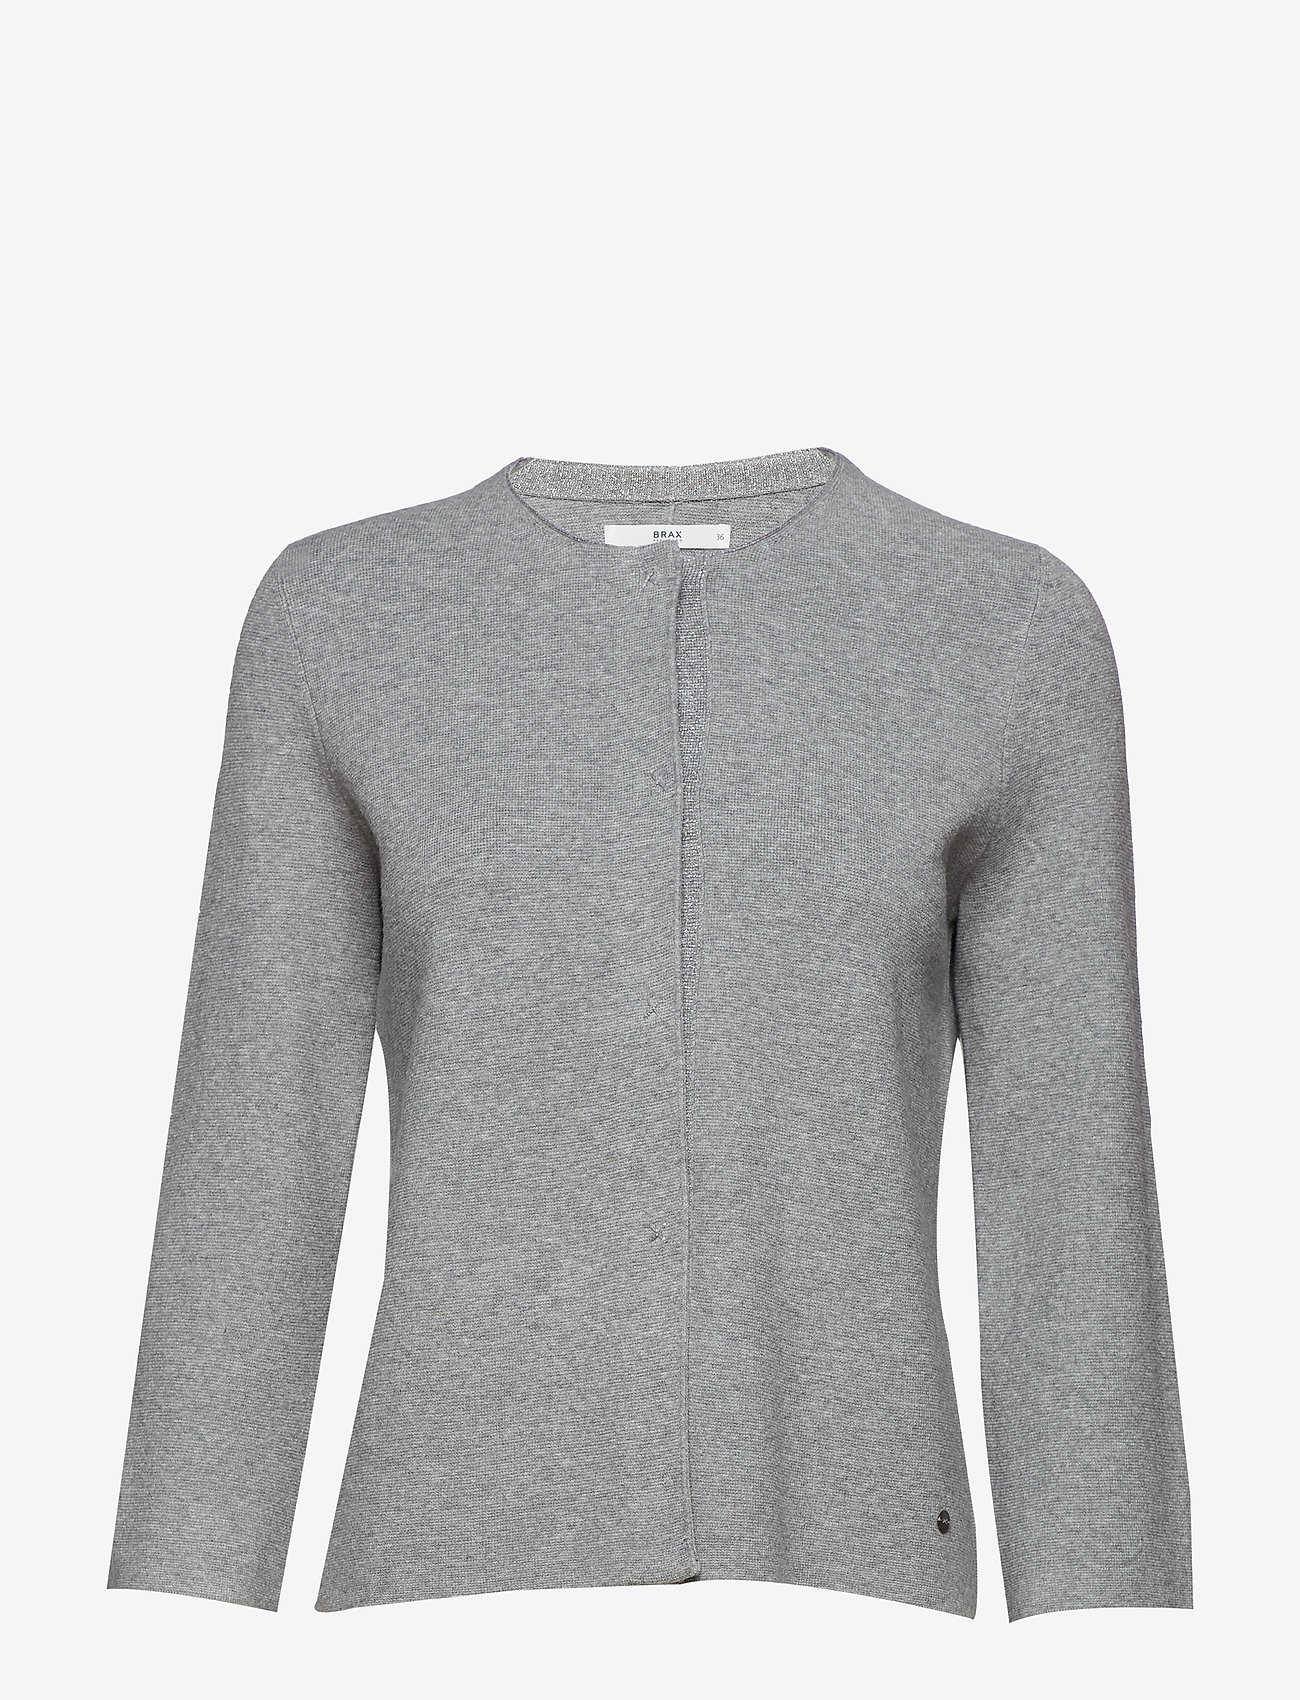 BRAX - ANN - cardigans - light grey mel. - 0